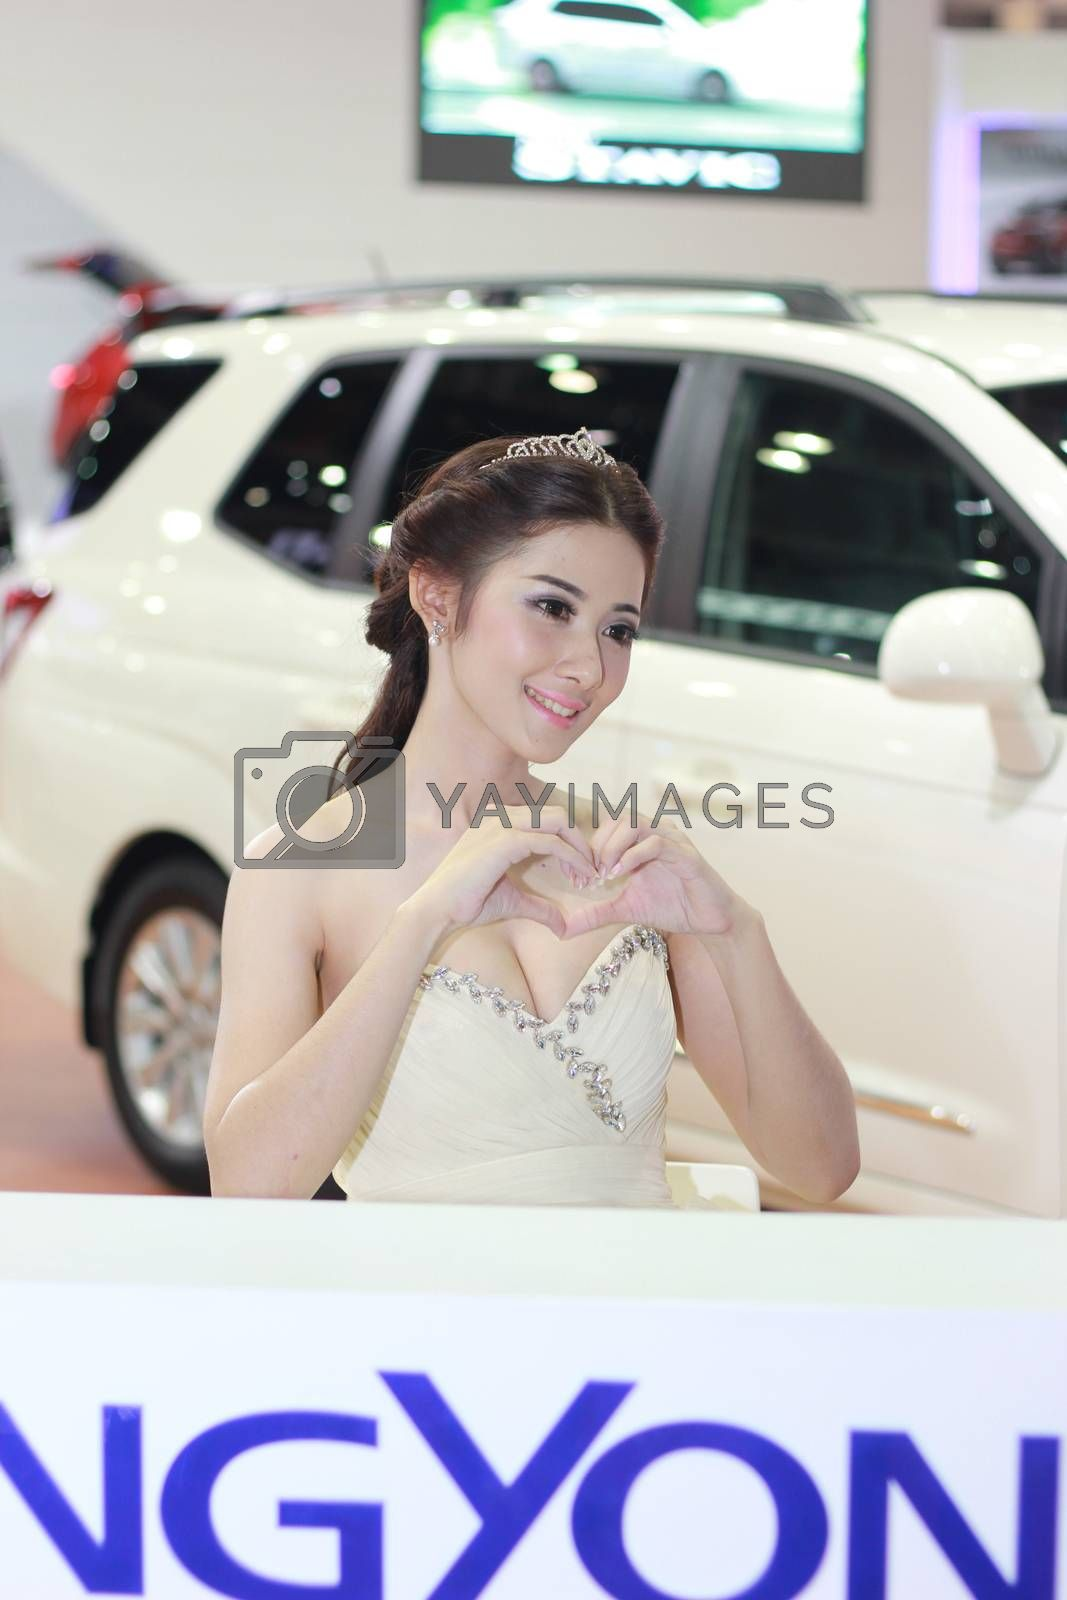 BANGKOK, THAILAND - MARCH 30, 2014: Unidentified female presenter pose in the 35th Bangkok International Motor Show on March 30, 2014 in Nonthaburi, Thailand.